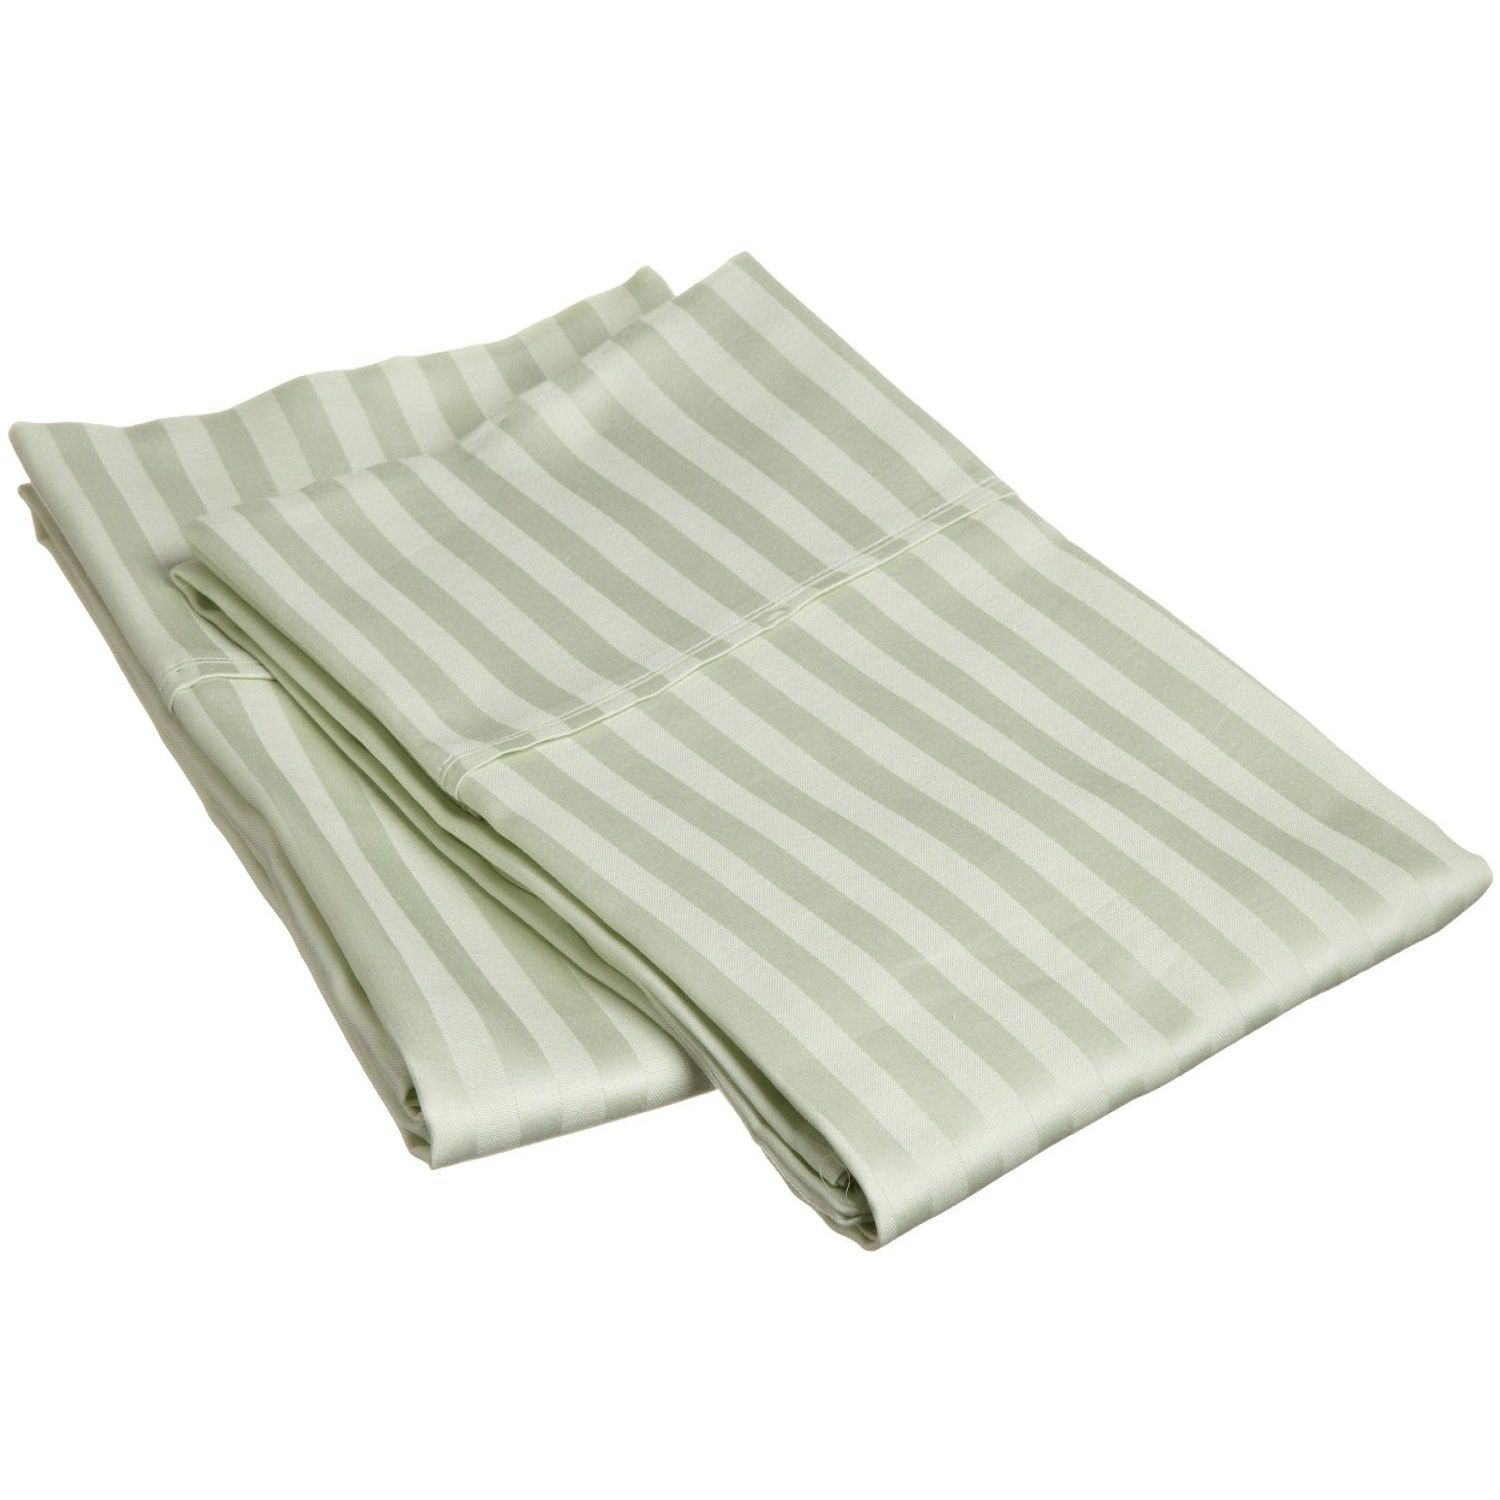 Highest Rated Bed Sheets Striped 300 Thread Count Pillowcases Premium Long Staple